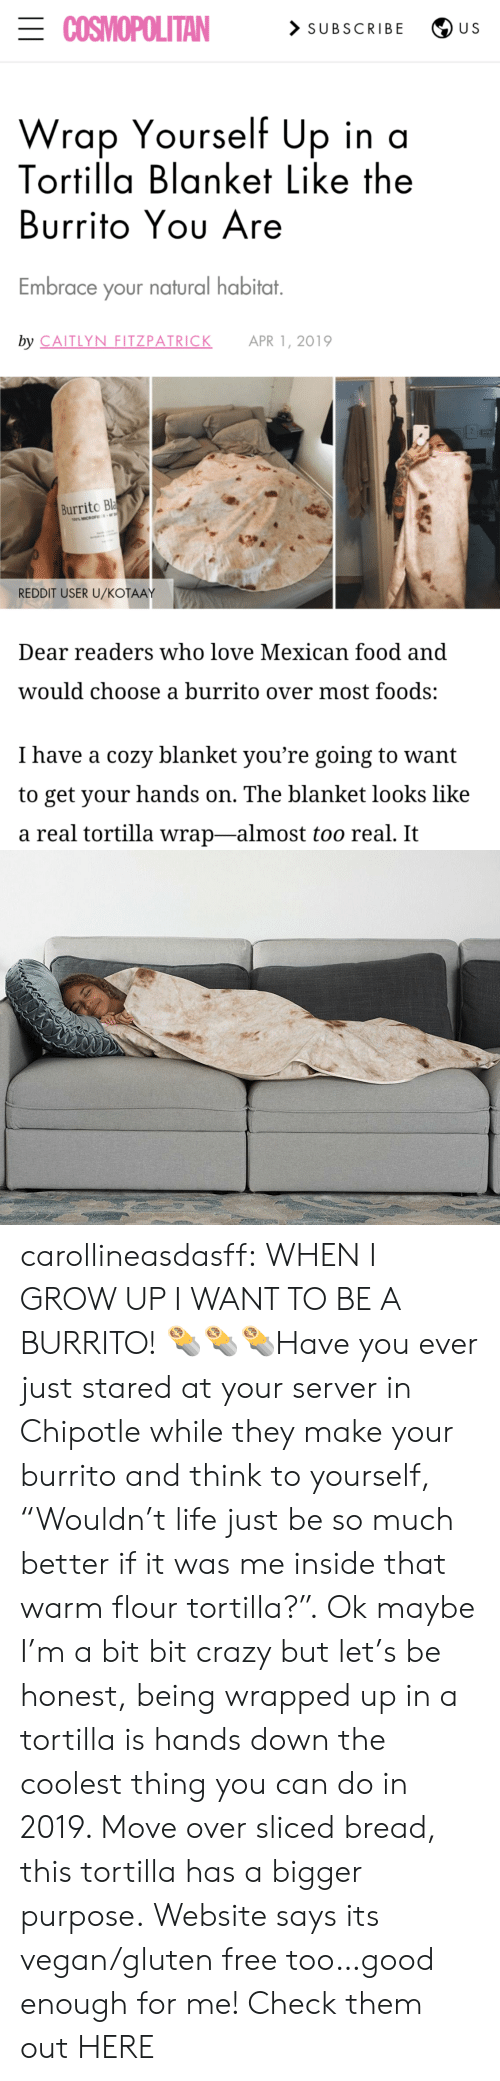 "server: ECOSMOPOLITAN  > SUBSCRIBE  U S  Wrap Yourself Up in a  Tortilla Blanket Like the  Burrito Yου Are  Embrace your natural habitat.  by CAITLYN FITZPATRICK  APR 1, 2019  Burrito Bla  100% MICROFE  REDDIT USER U/KOŤAAY  Dear readers who love Mexican food and  would choose a burrito over most foods:  I have a cozy blanket you're going to want  to get your hands on. The blanket looks like  a real tortilla wrap-almost too real. It carollineasdasff:  WHEN I GROW UP I WANT TO BE A BURRITO! 🌯🌯🌯Have you ever just stared at your server in Chipotle while they make your burrito and think to yourself, ""Wouldn't life just be so much better if it was me inside that warm flour tortilla?"". Ok maybe I'm a bit bit crazy but let's be honest, being wrapped up in a tortilla is hands down the coolest thing you can do in 2019. Move over sliced bread, this tortilla has a bigger purpose. Website says its vegan/gluten free too…good enough for me! Check them out HERE"